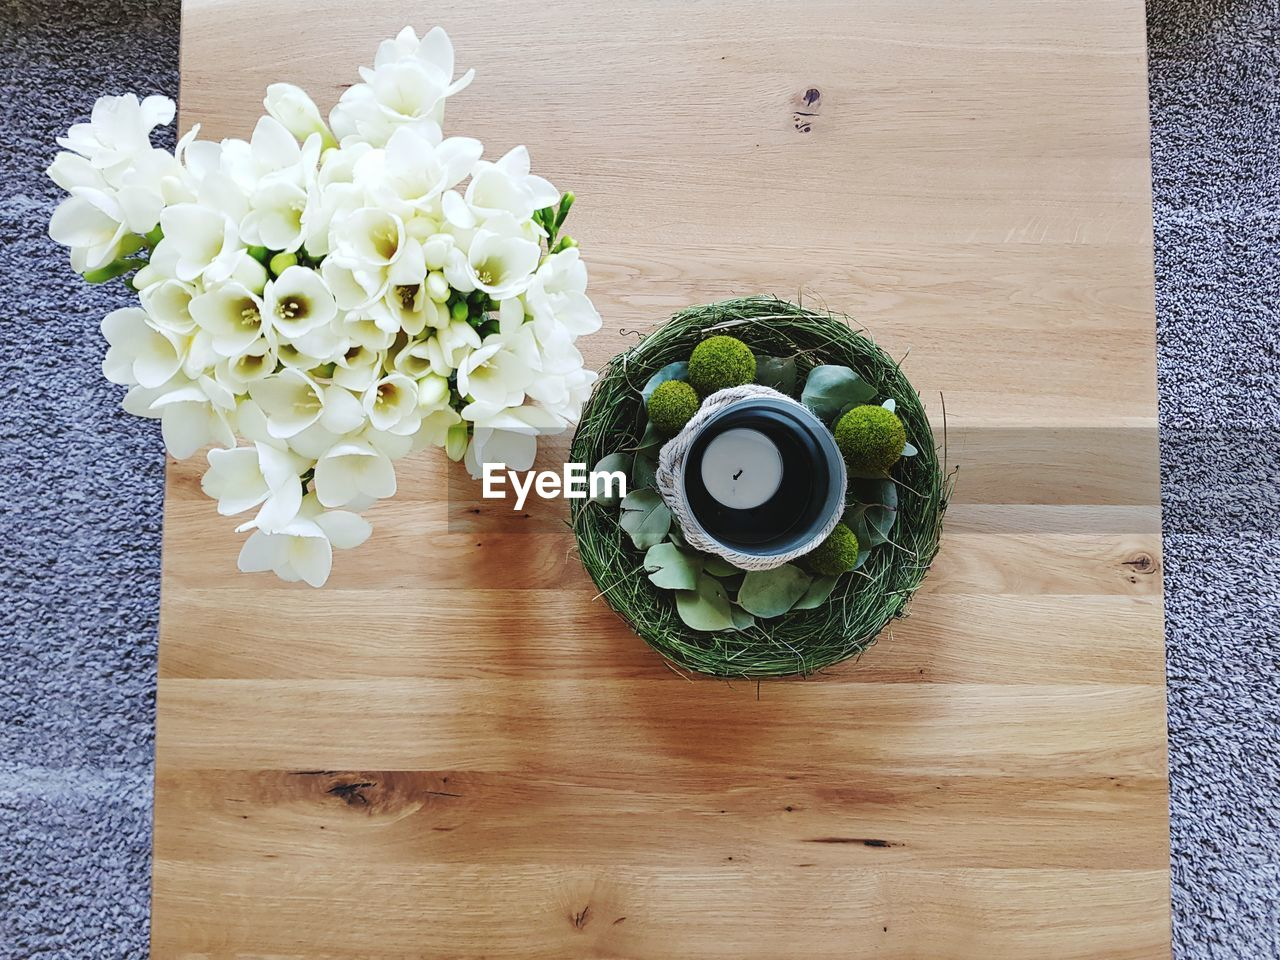 freshness, flower, flowering plant, plant, directly above, table, indoors, high angle view, beauty in nature, wood - material, food and drink, vulnerability, no people, nature, fragility, close-up, vase, still life, green color, food, flower head, flower arrangement